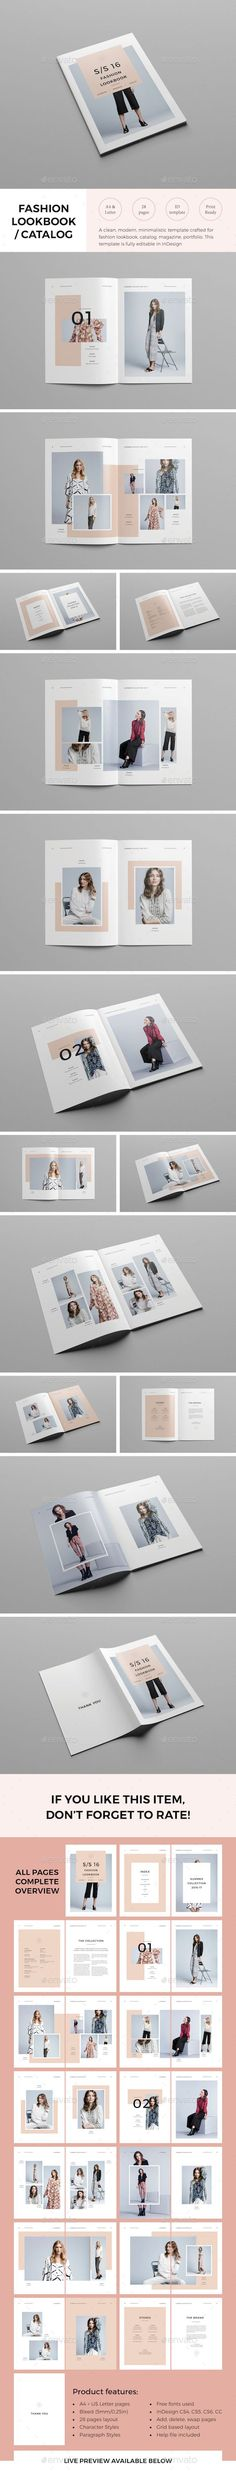 Lookbook Template InDesign INDD. Download here: http://graphicriver.net/item/lookbook-template/15315869?ref=ksioks Nail Design, Nail Art, Nail Salon, Irvine, Newport Beach